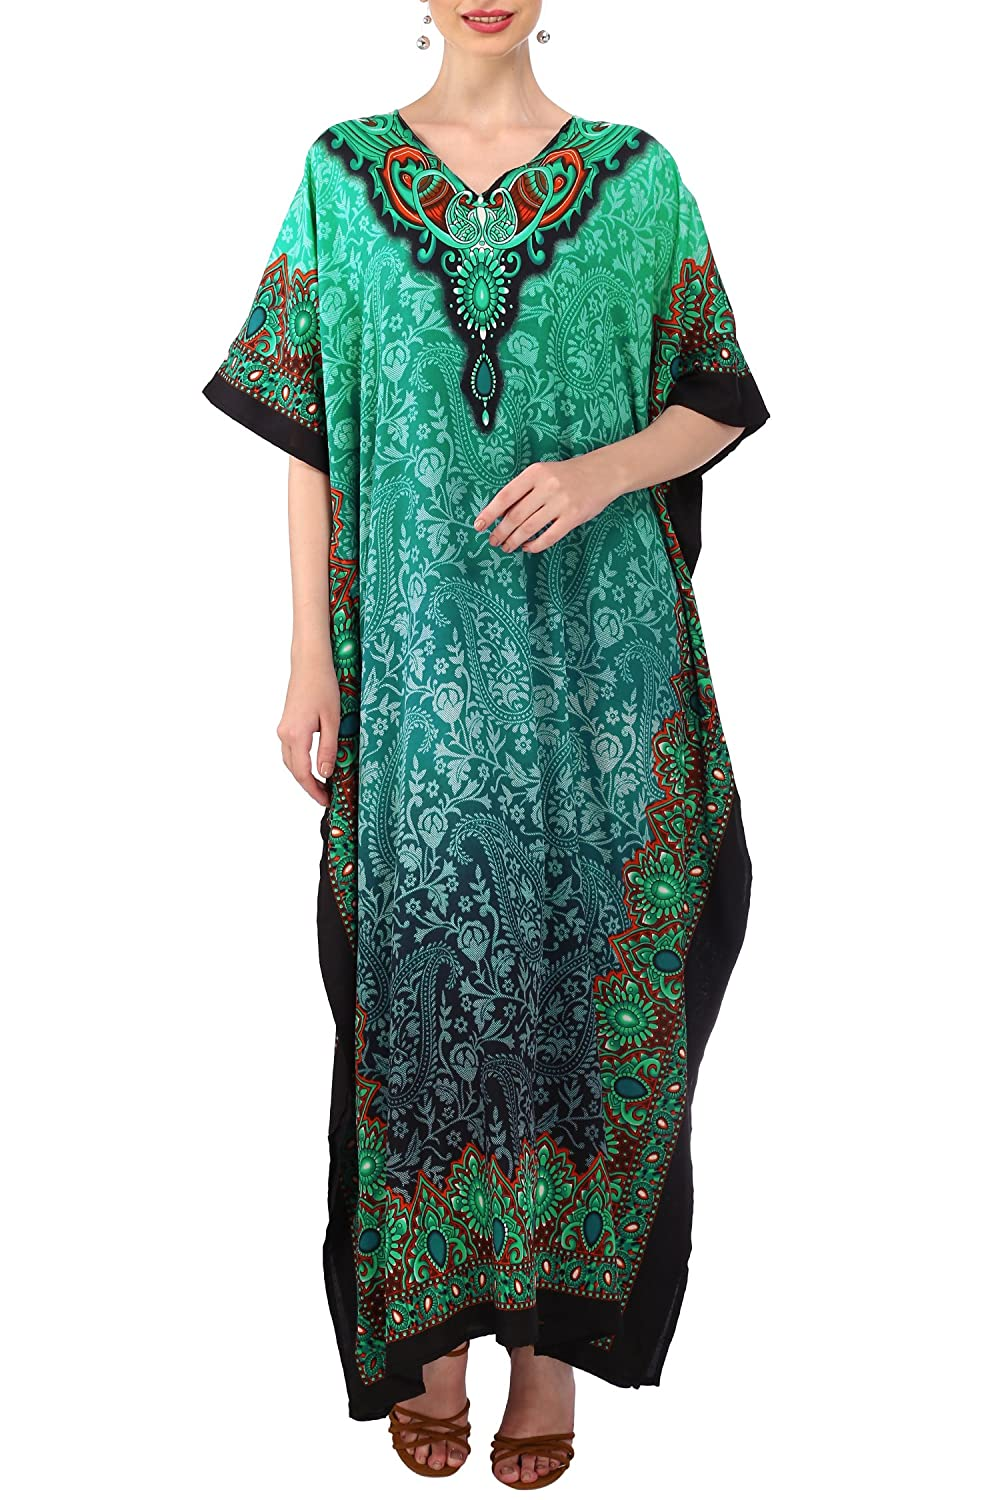 Great Gatsby Dress – Great Gatsby Dresses for Sale Miss Lavish London Ladies Kaftans Kimono Maxi Style Dresses Suiting Teens to Adult Women in Regular to Plus Size $17.99 AT vintagedancer.com